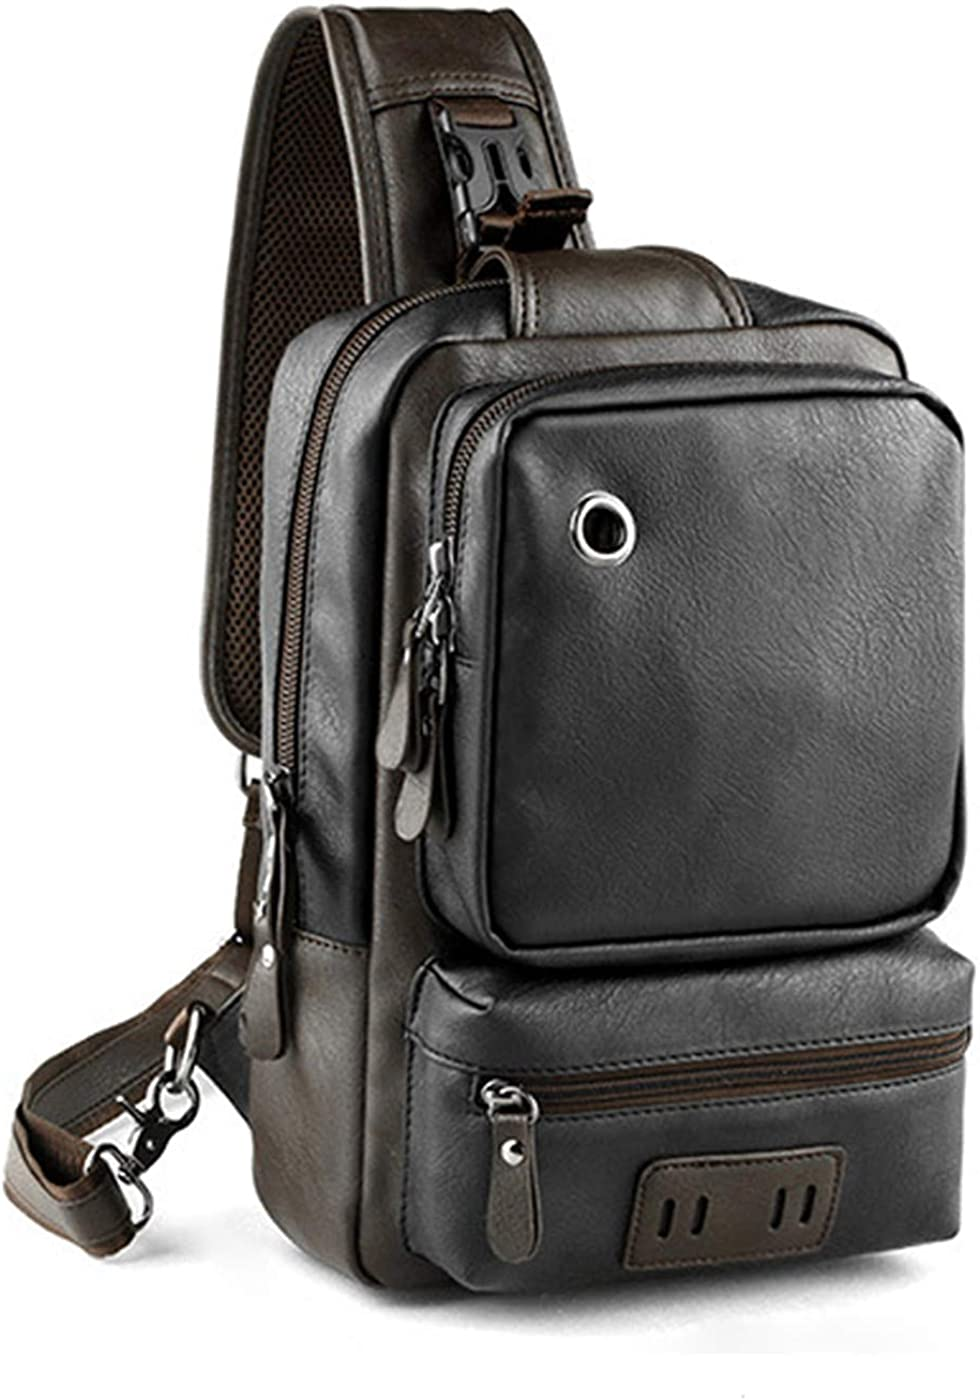 Bestsent Men s Leather Sling Bag Chest CrossBody Bag Casual Backpack for 11 Inch Ipad Pro